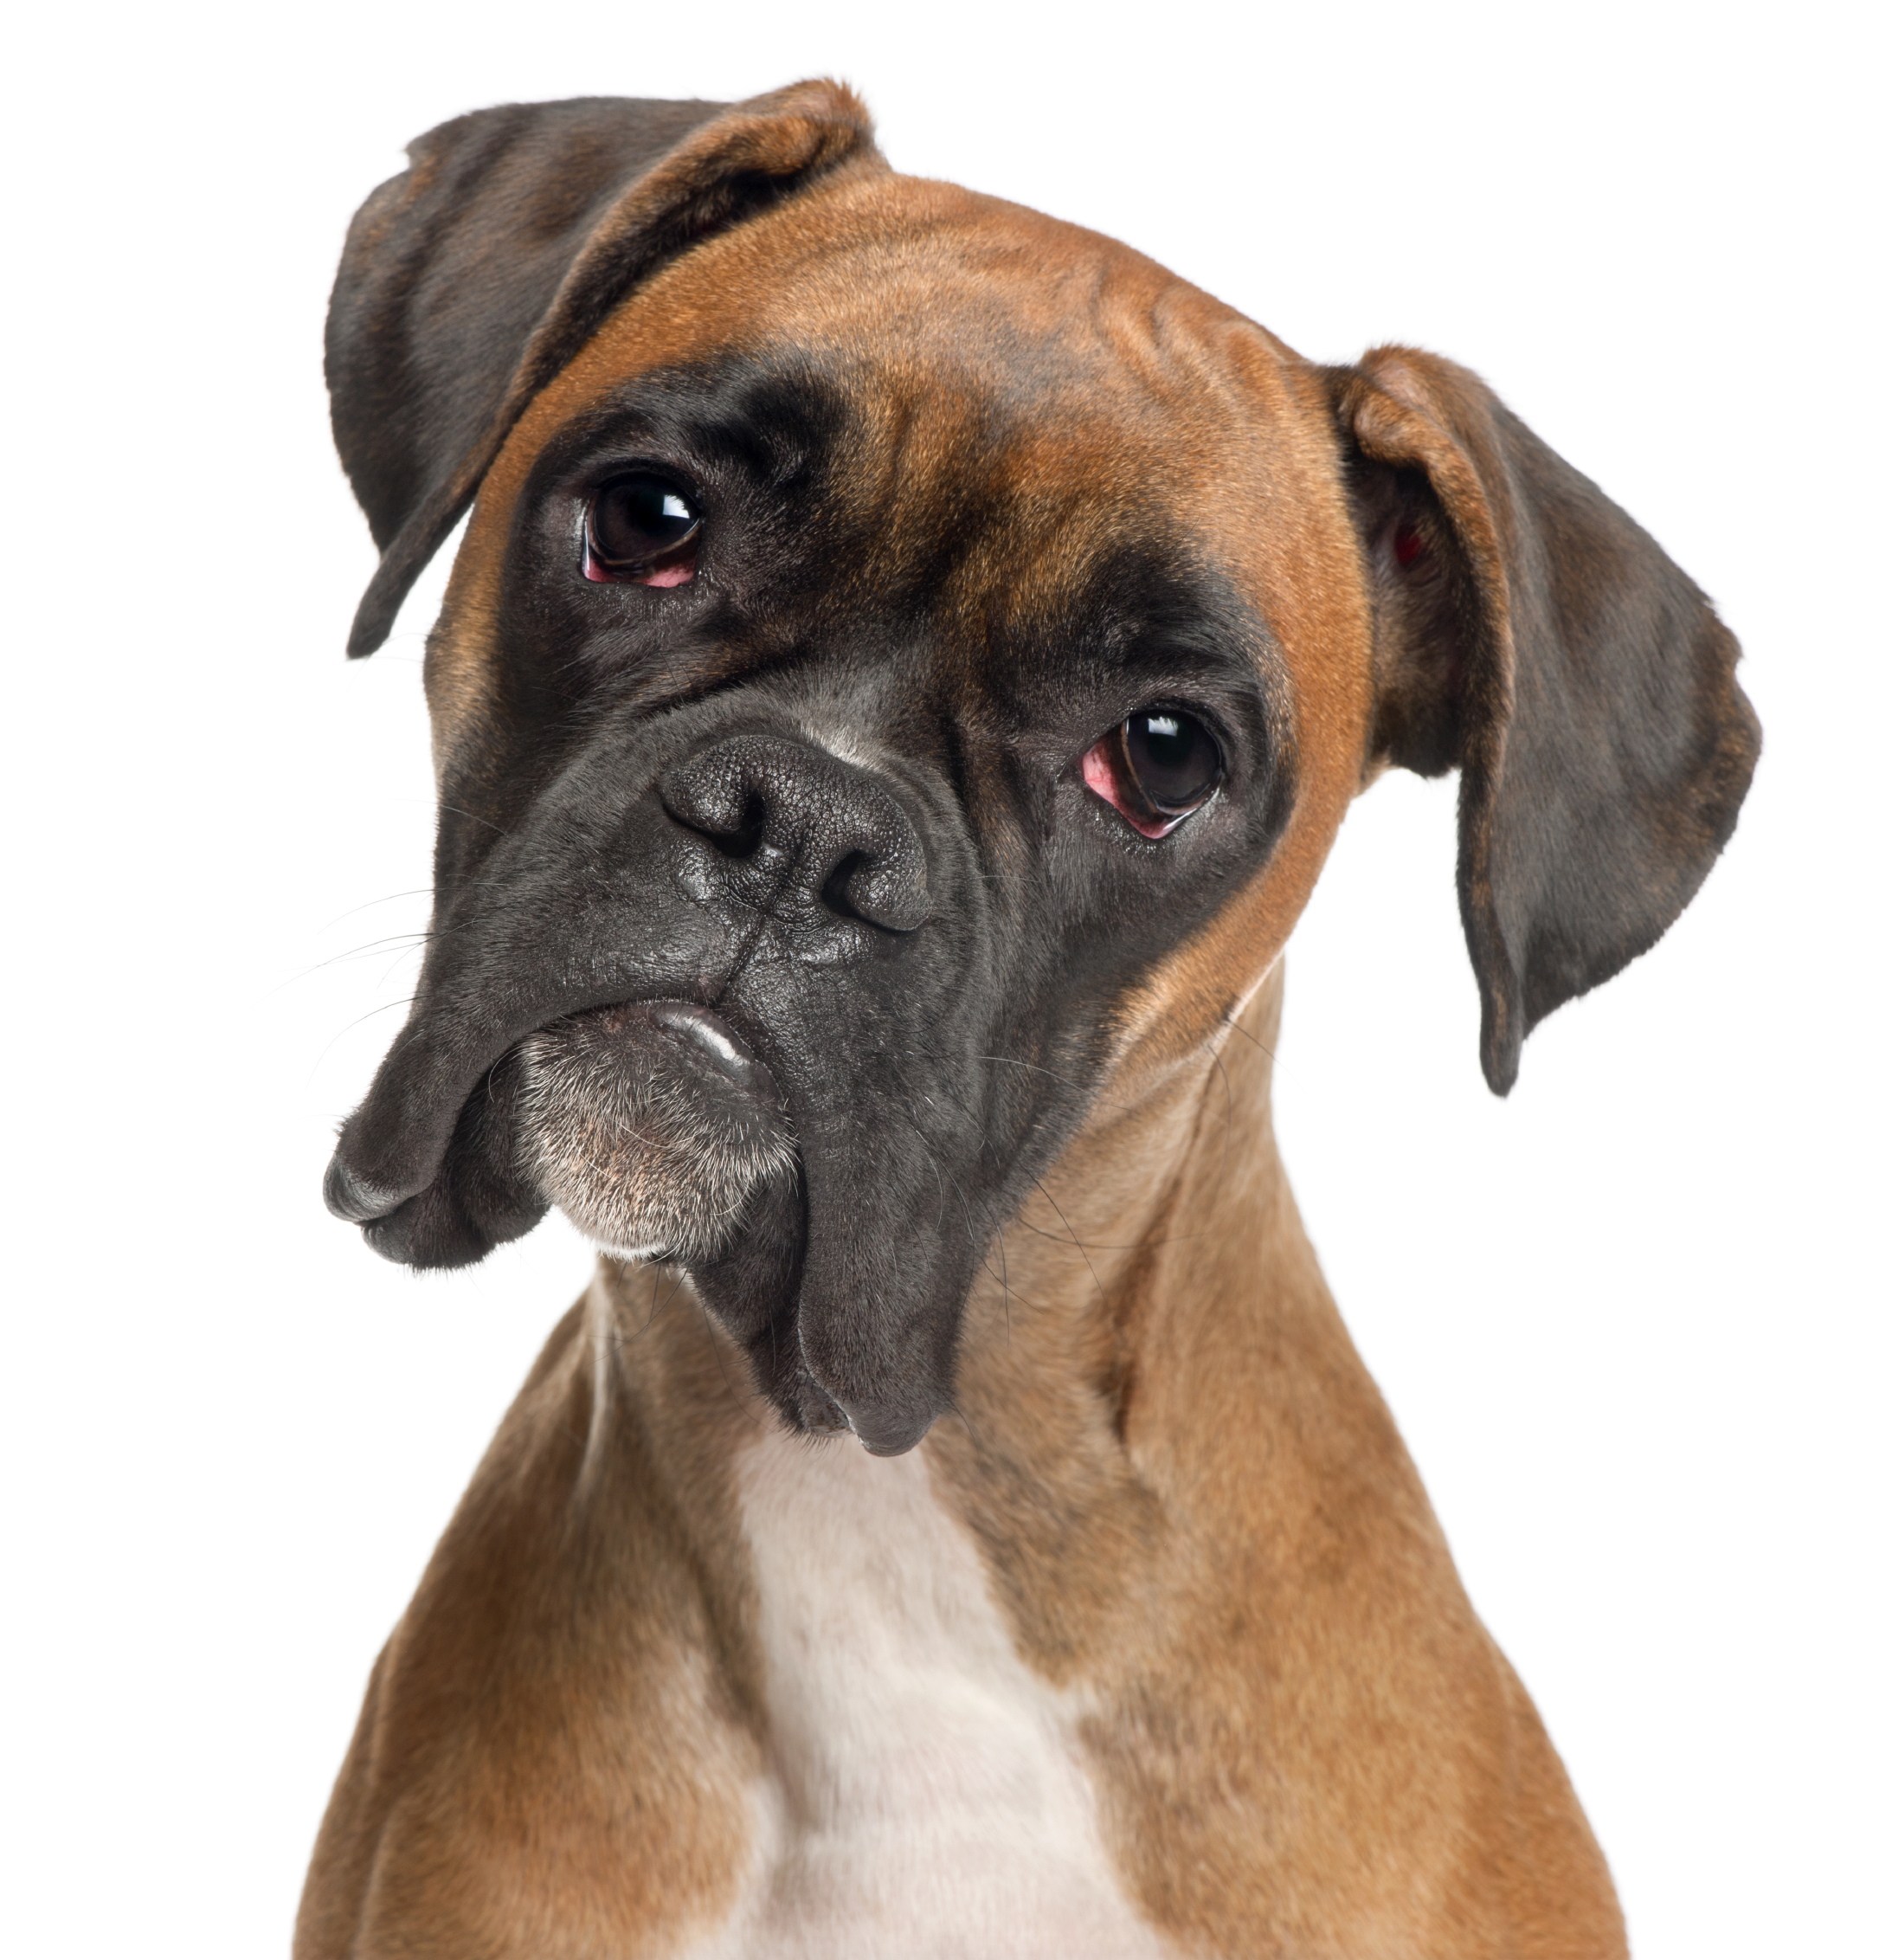 Boxer De 2 Meses No 8 Boxer 2014 39s Most Popular Dog Breeds In The U S